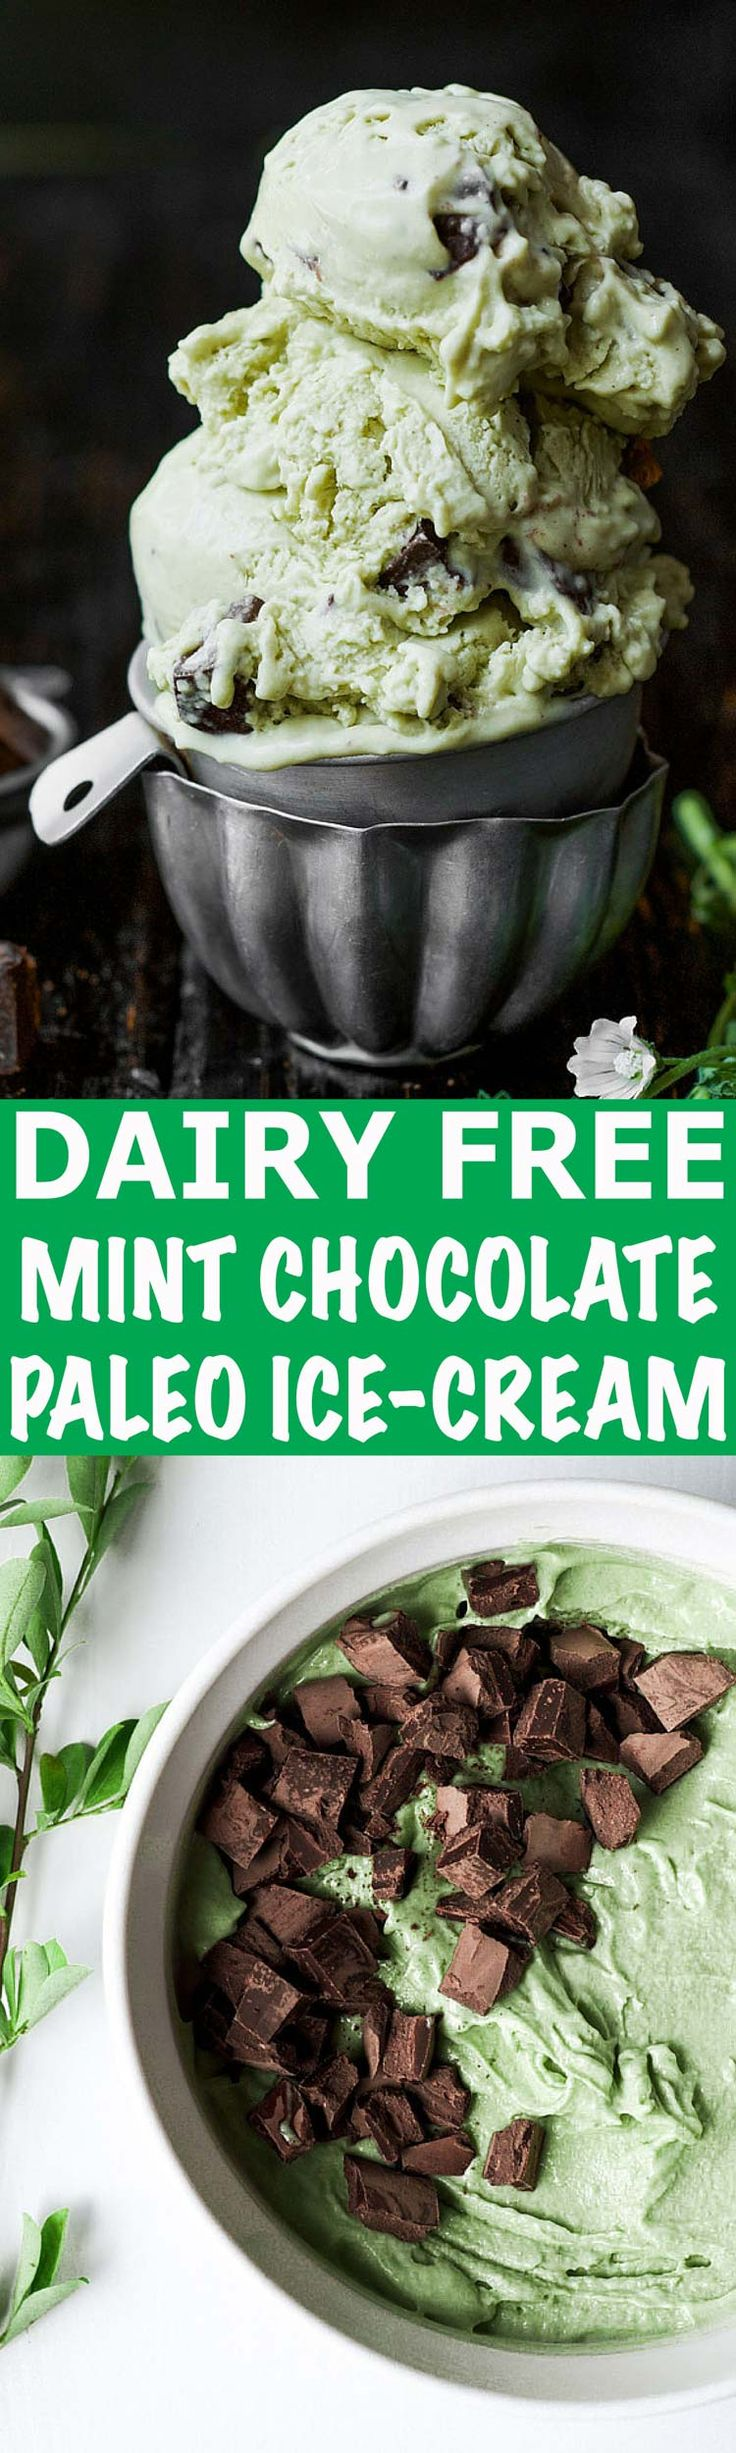 Creamy refreshing smooth vegan paleo ice-cream is the perfect summer treat! Incredibly easy to make at home, this dairy free mint chocolate chip ice-cream is so fresh and satisfying.